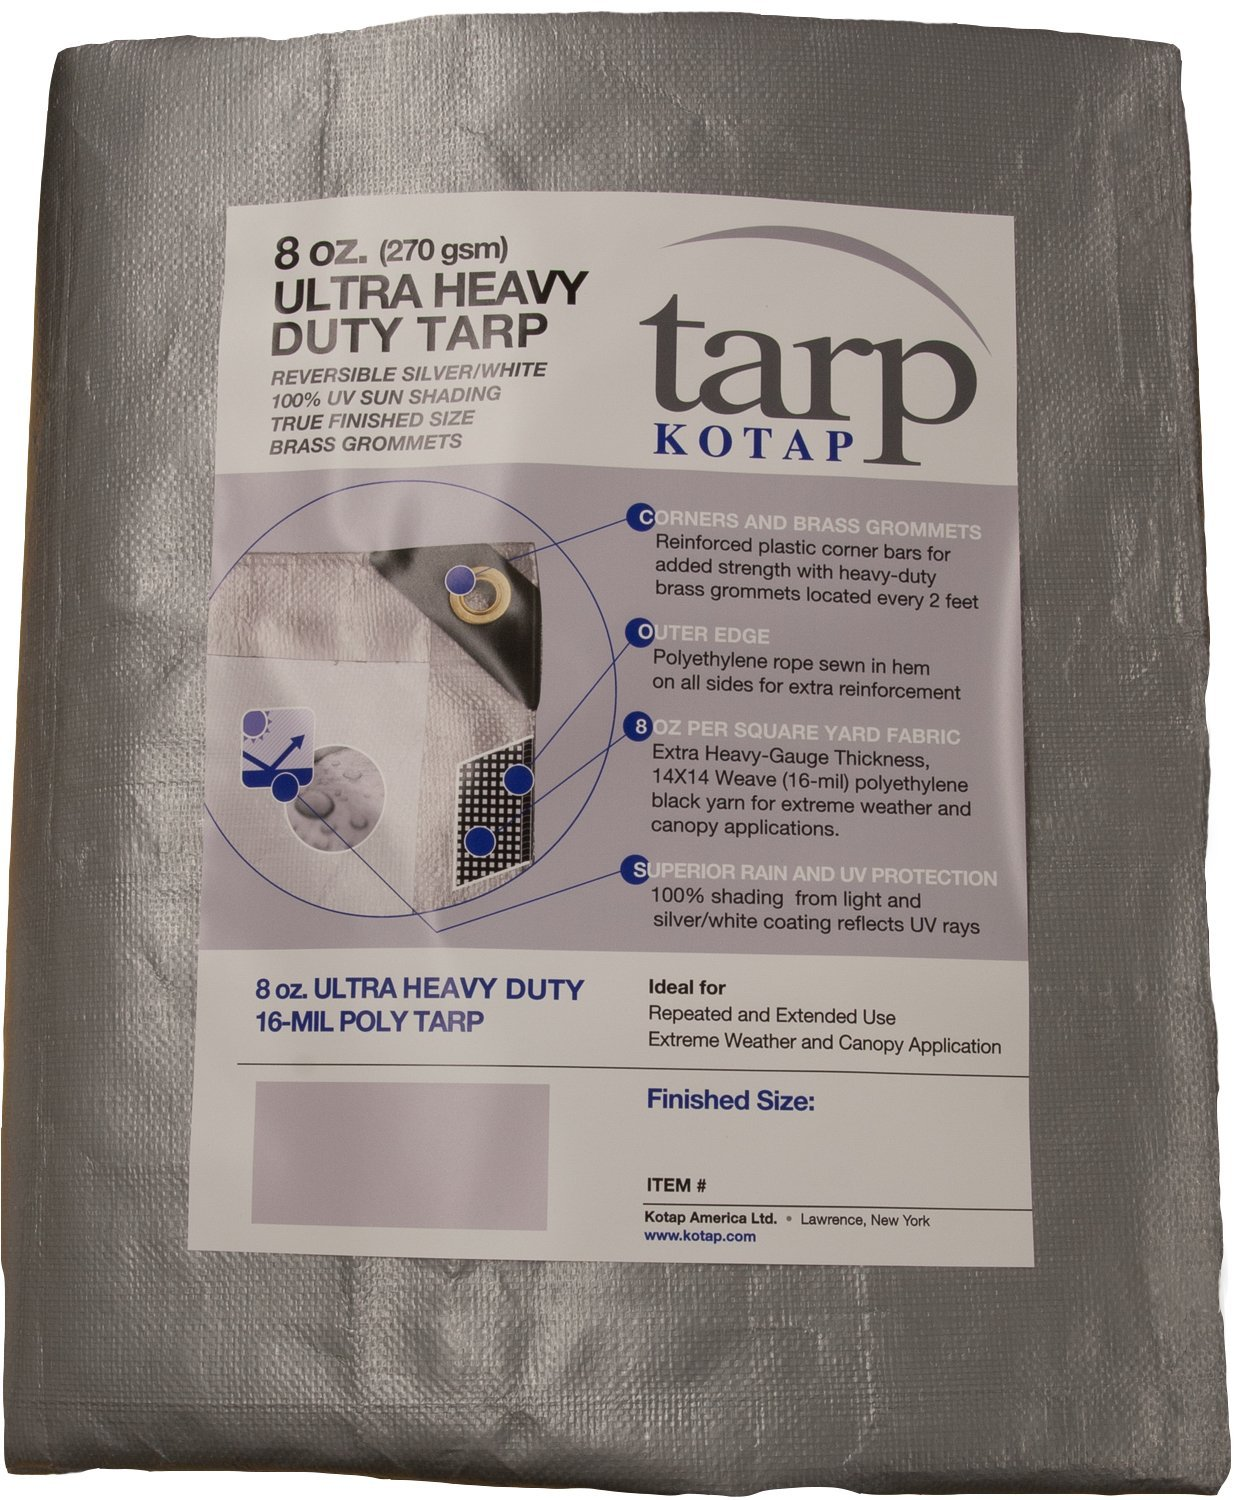 Kotap TUH-1220 Finished Size Ultra Heavy-Duty 8 oz/16-mil Poly Tarp, 12' x 20', Reversible Silver/White by Kotap